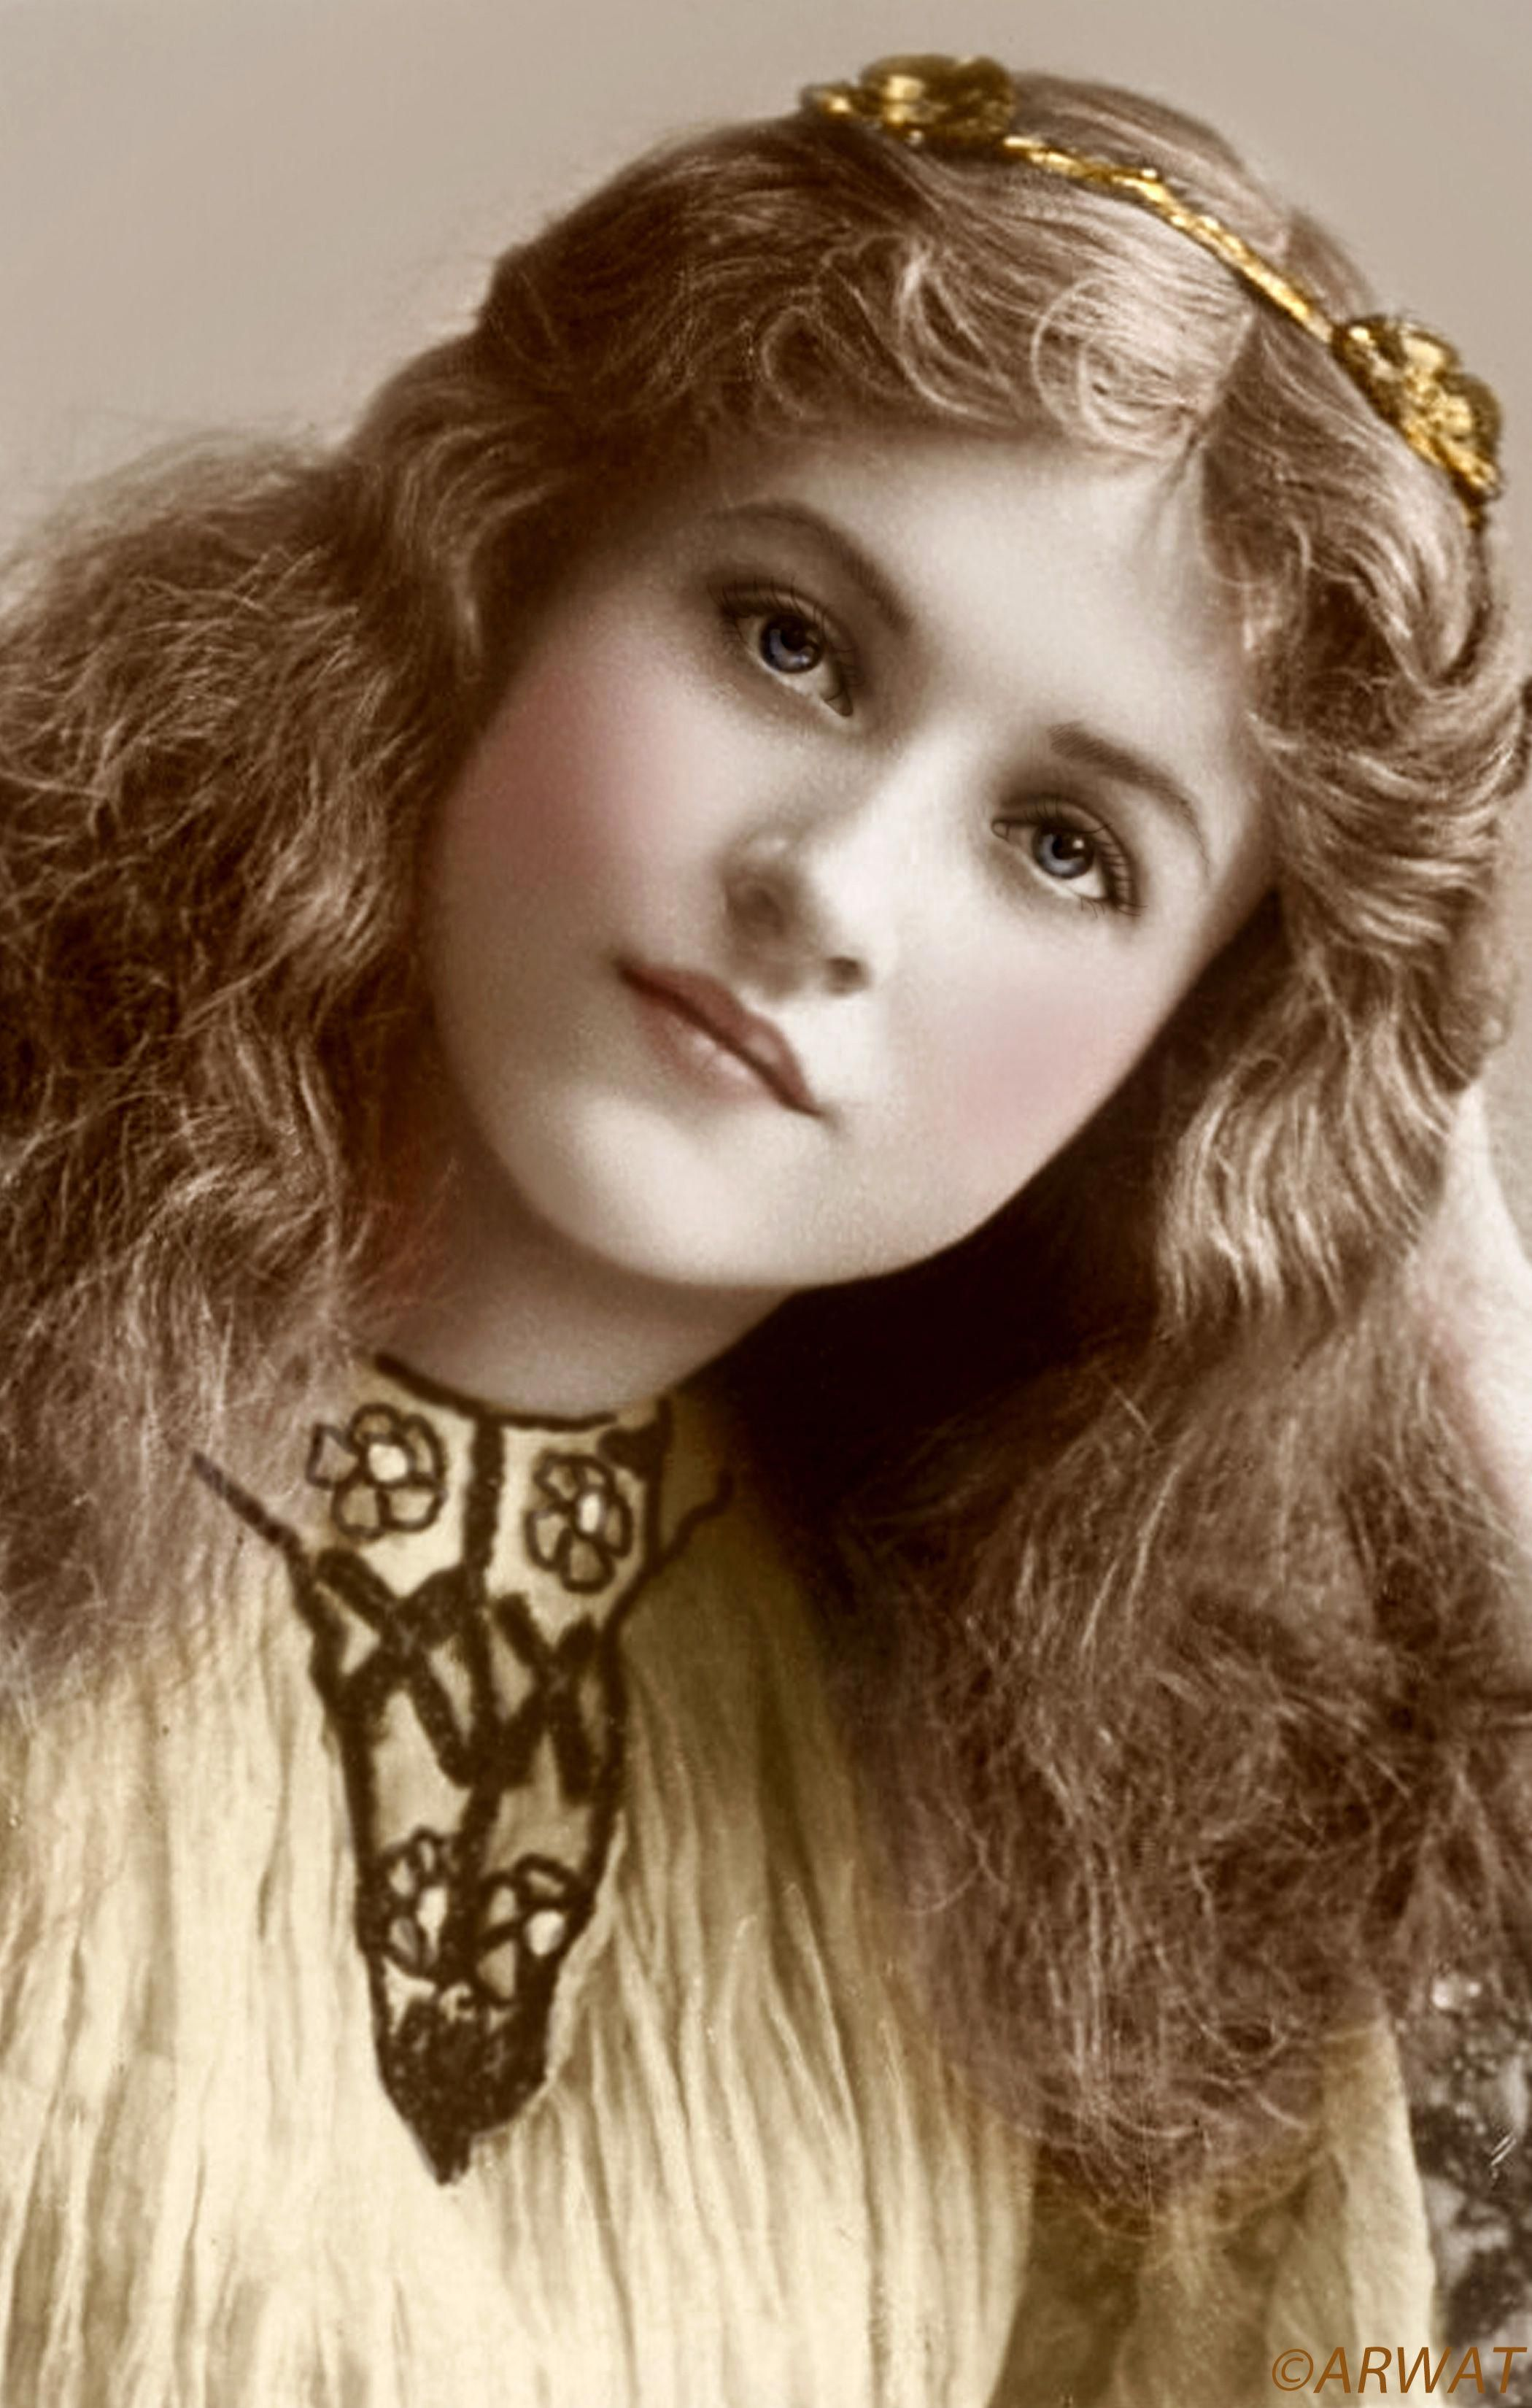 maude fealy - - Image Search Results | Vintage portraits